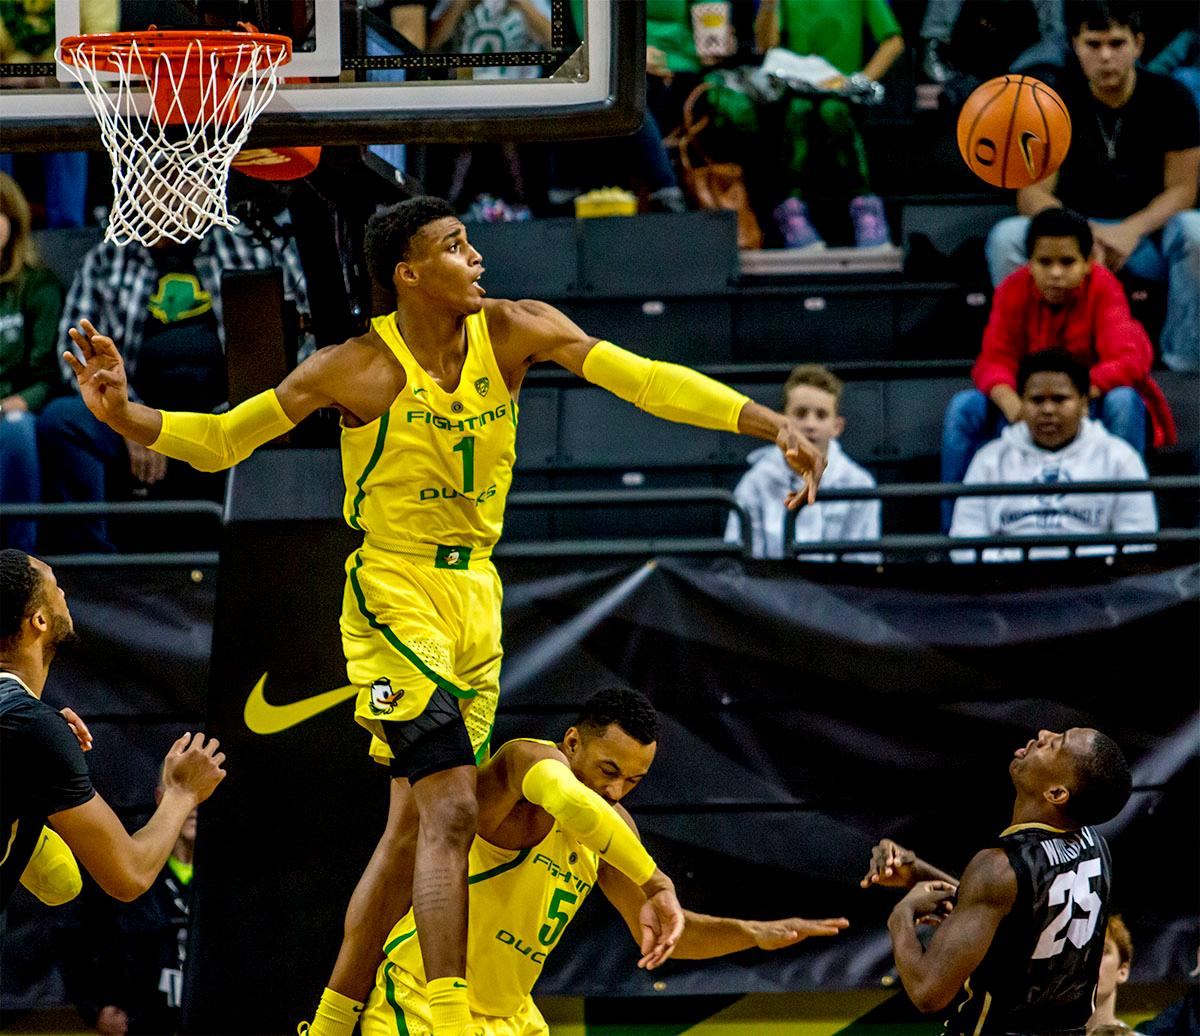 The Duck's Kenny Wooten (#1) blocks a shot. The Oregon Ducks defeated the Colorado Buffaloes 77-62 at Matthew Knight Arena on Sunday. Troy Brown had a season-high score of 21 points, Elijah Brown added 17, while Kenny Wooten and Payton Pritchard added 13 and 12 respectively. Oregon is now 1-1 in conference play. The Ducks next face off against the Oregon State Beavers in Corvallis on Friday, January 5th. Photo by August Frank, Oregon News Lab